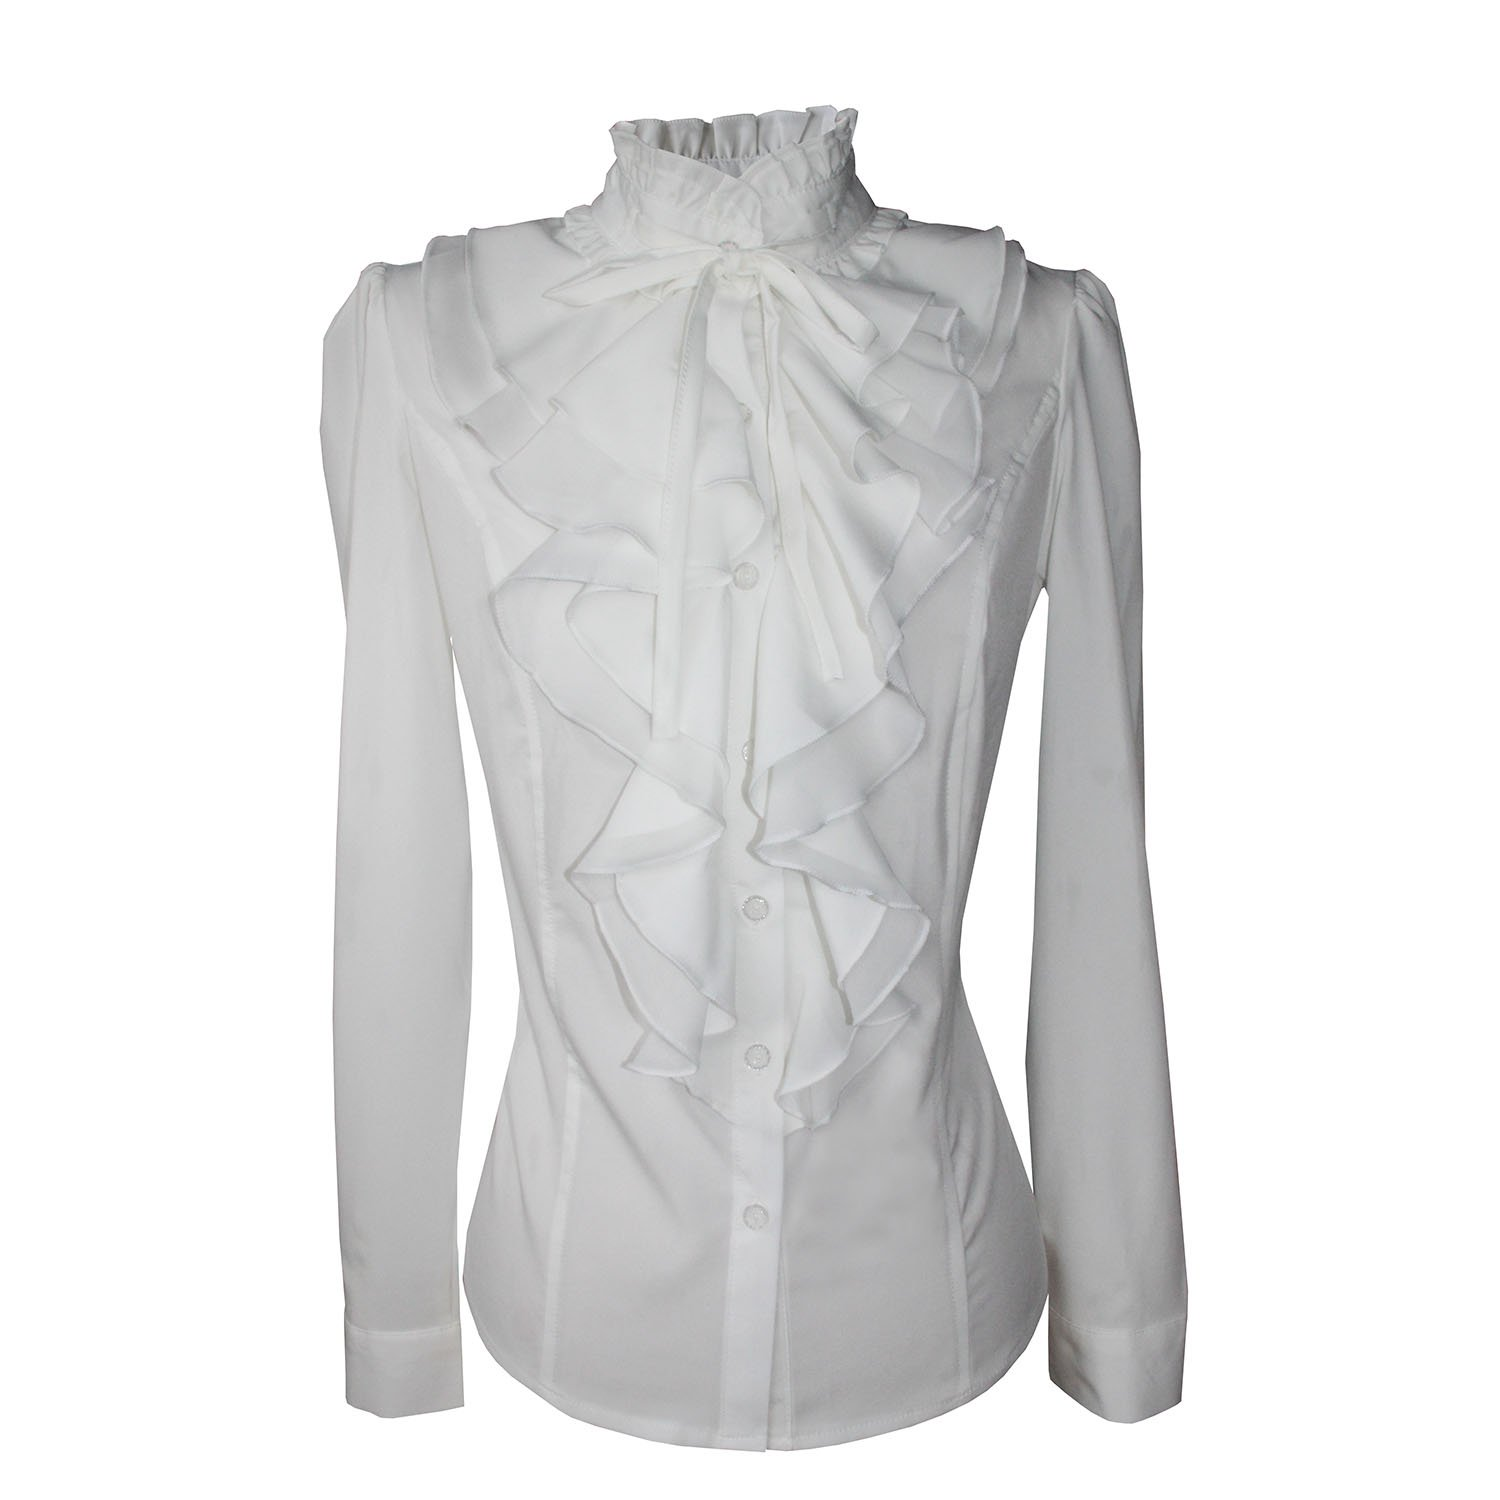 Edwardian Blouses |  Lace Blouses & Sweaters Y&Z Shirts for Women Stand-up Collar Vintage Victoria Ruffle BS02 $18.99 AT vintagedancer.com